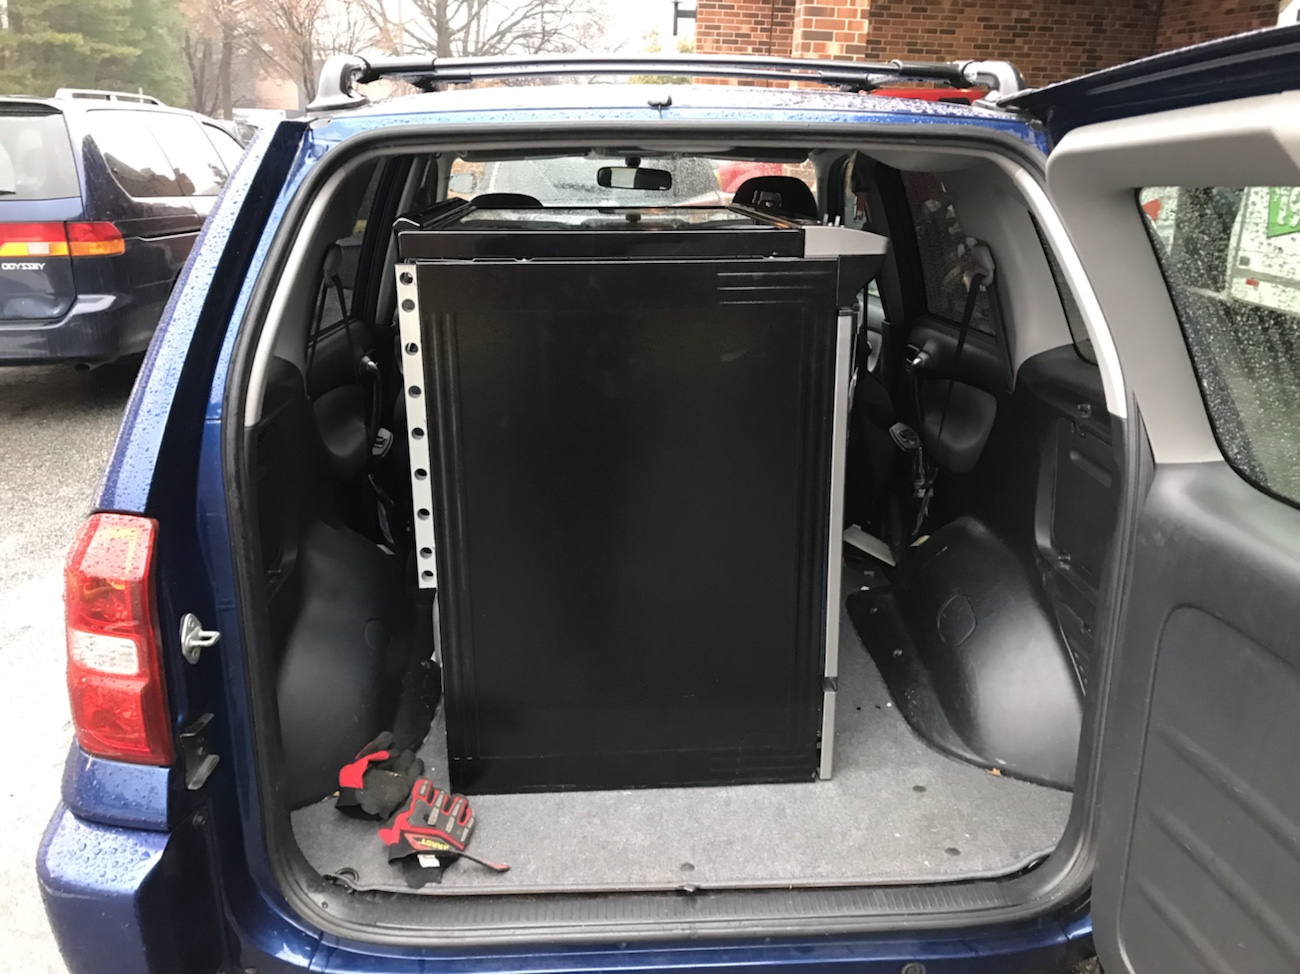 Toyota RAV4 with kitchen stove in back